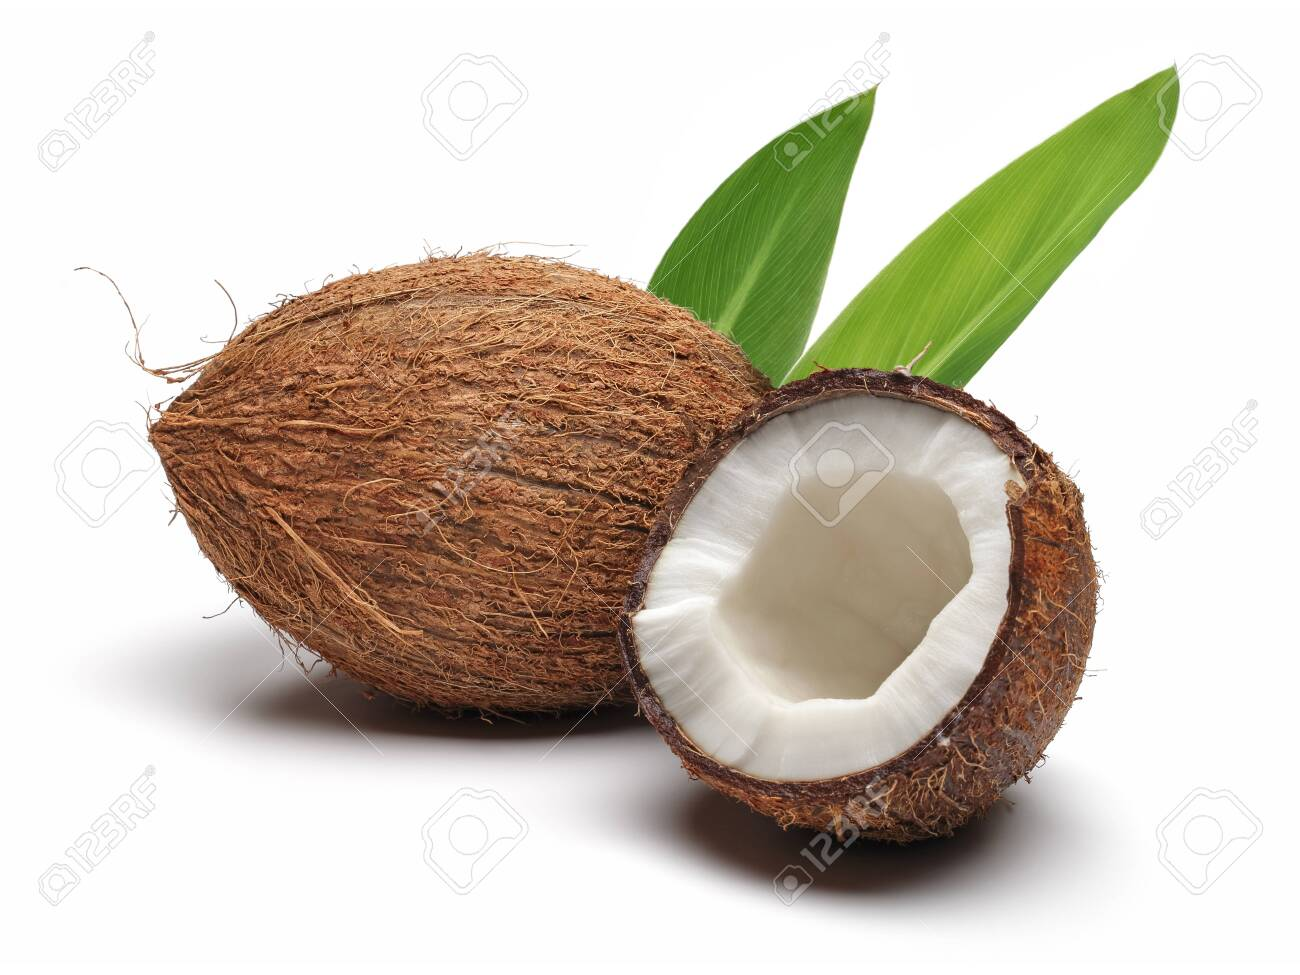 Fresh coconut broken in half with leaf isolated on white background - 124005193